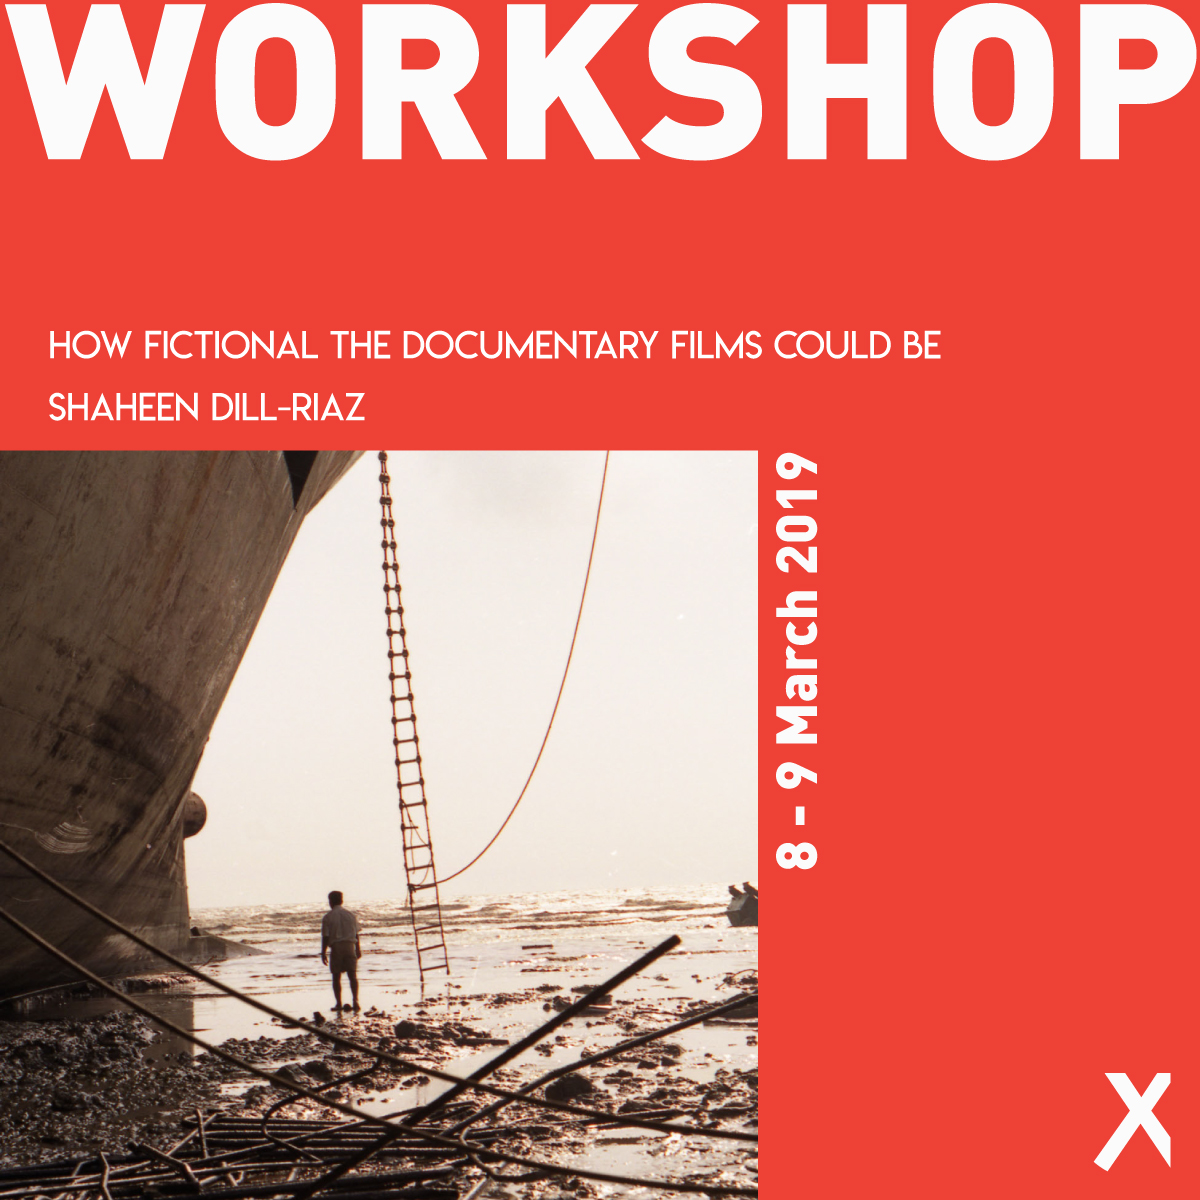 HOW FICTIONAL THE DOCUMENTARY FILMS COULD BE by  Shaheen Dill-Riaz